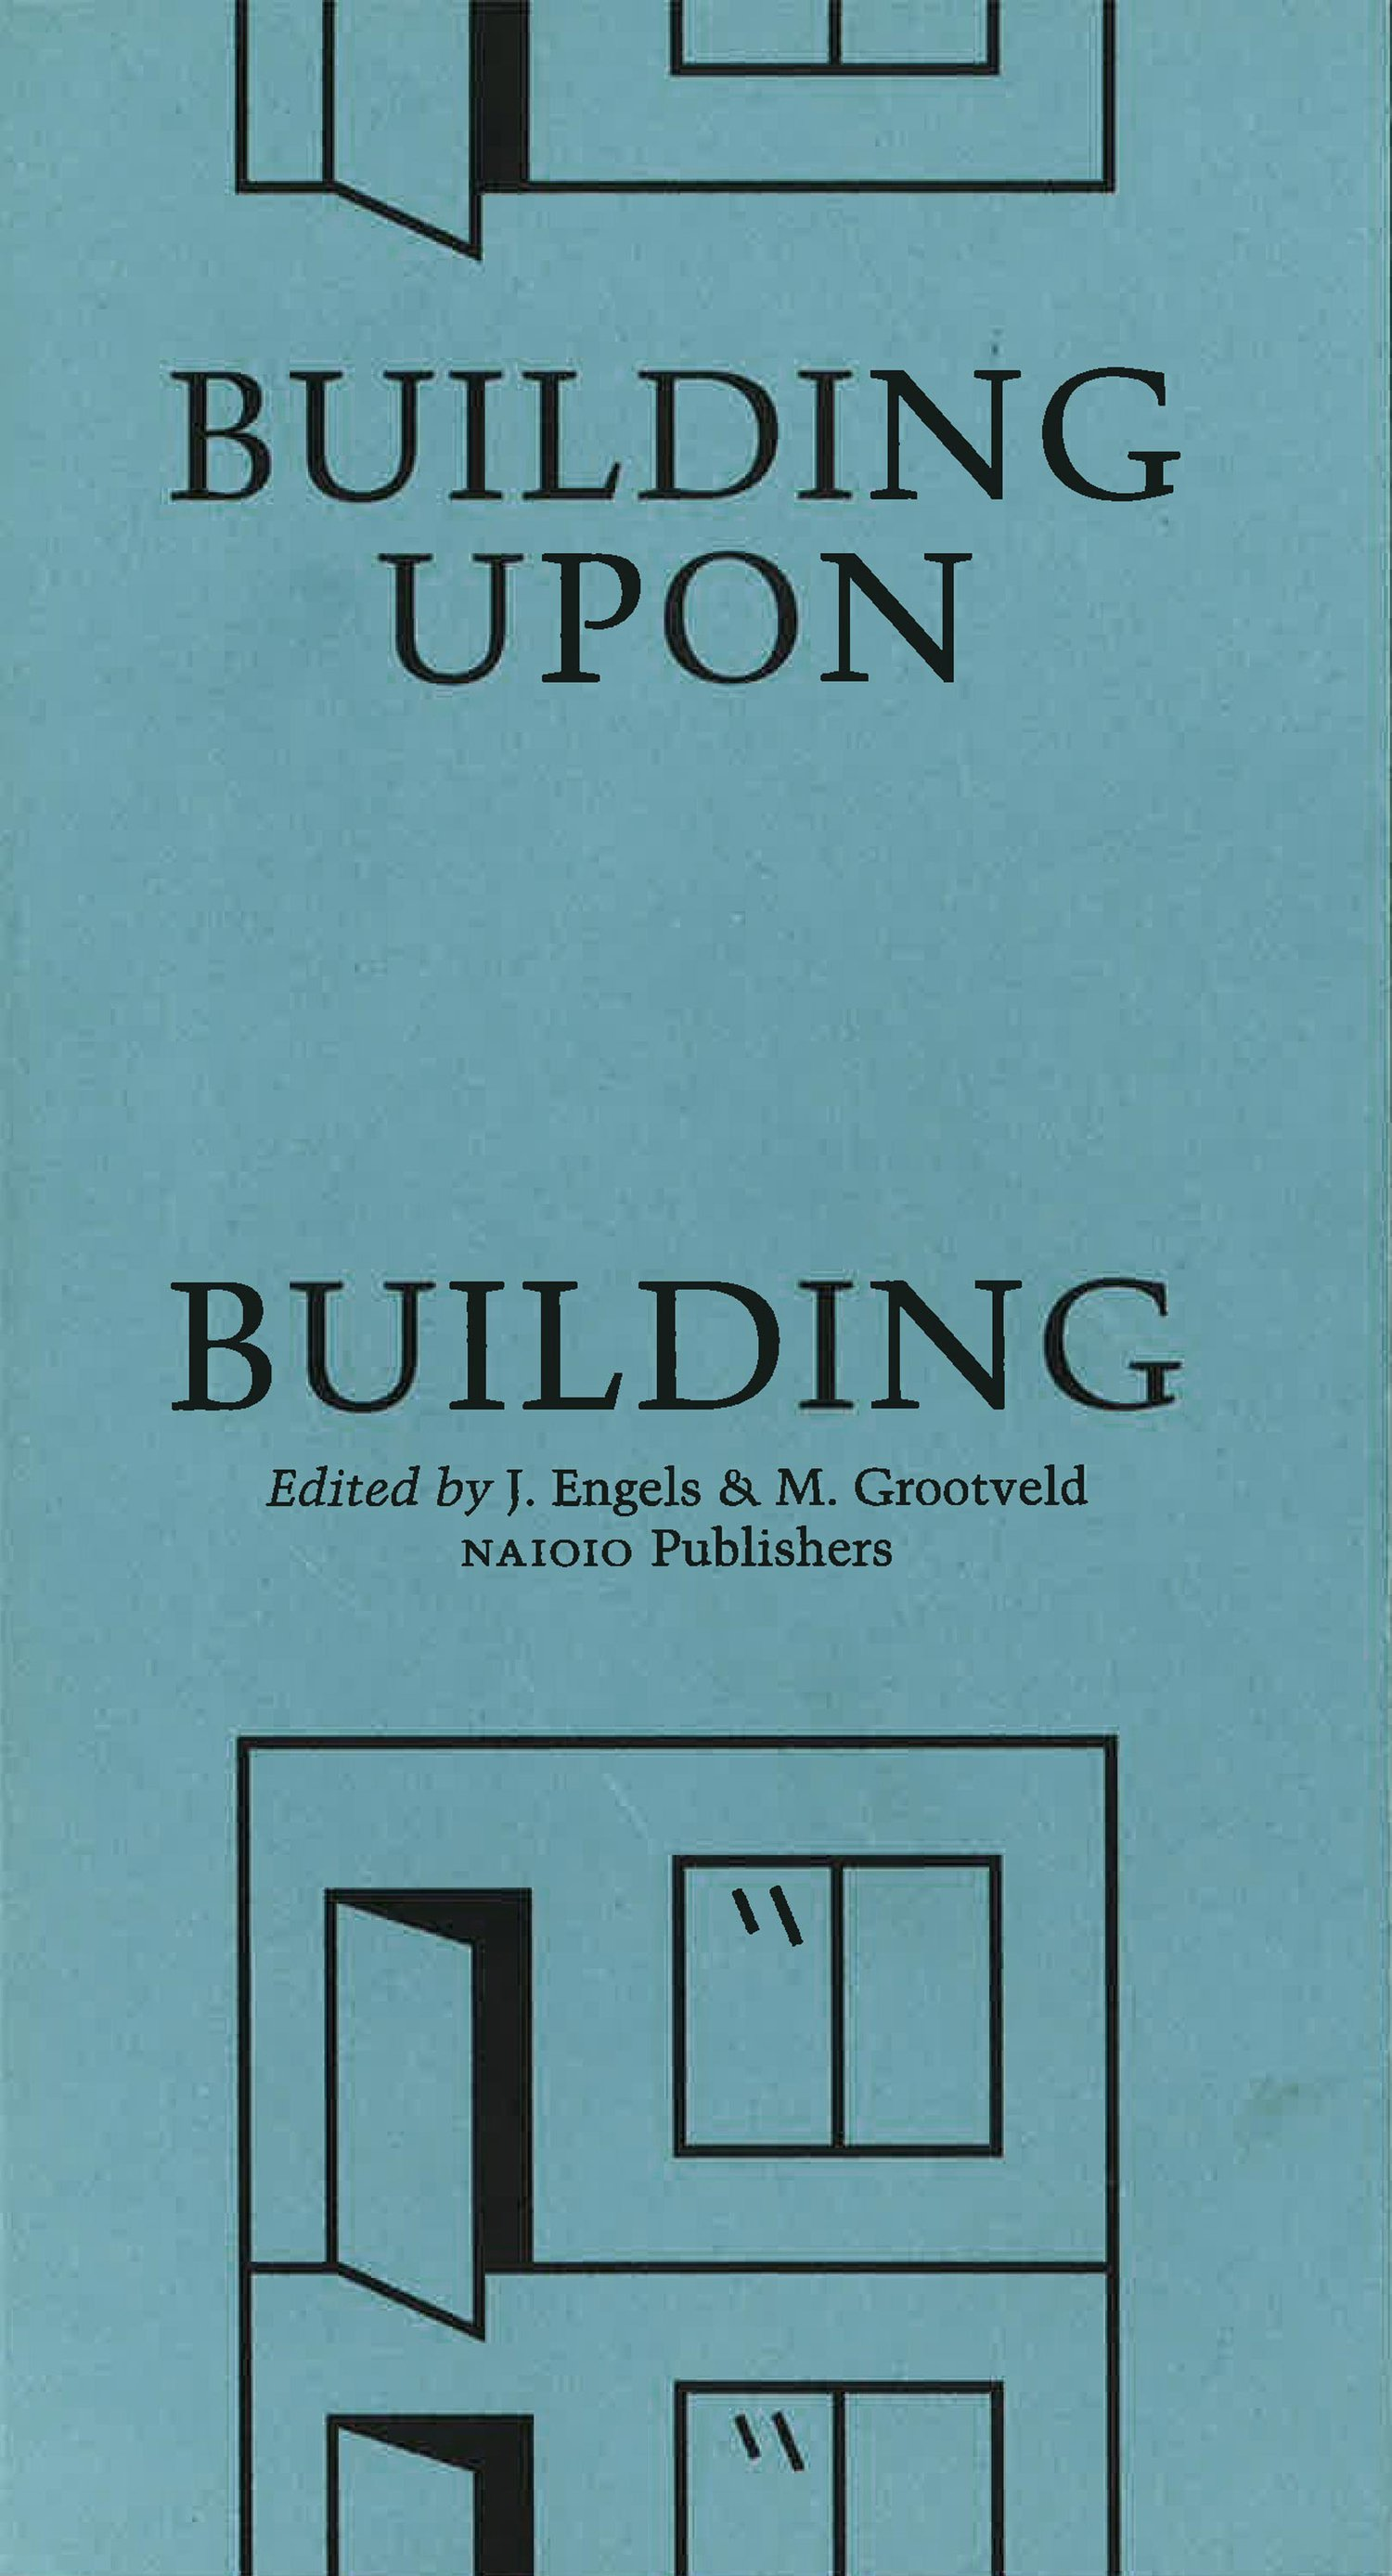 AKA_001_Publication_2015_BuildingUponBuilding_MoreNotLess!_cover_01.jpg